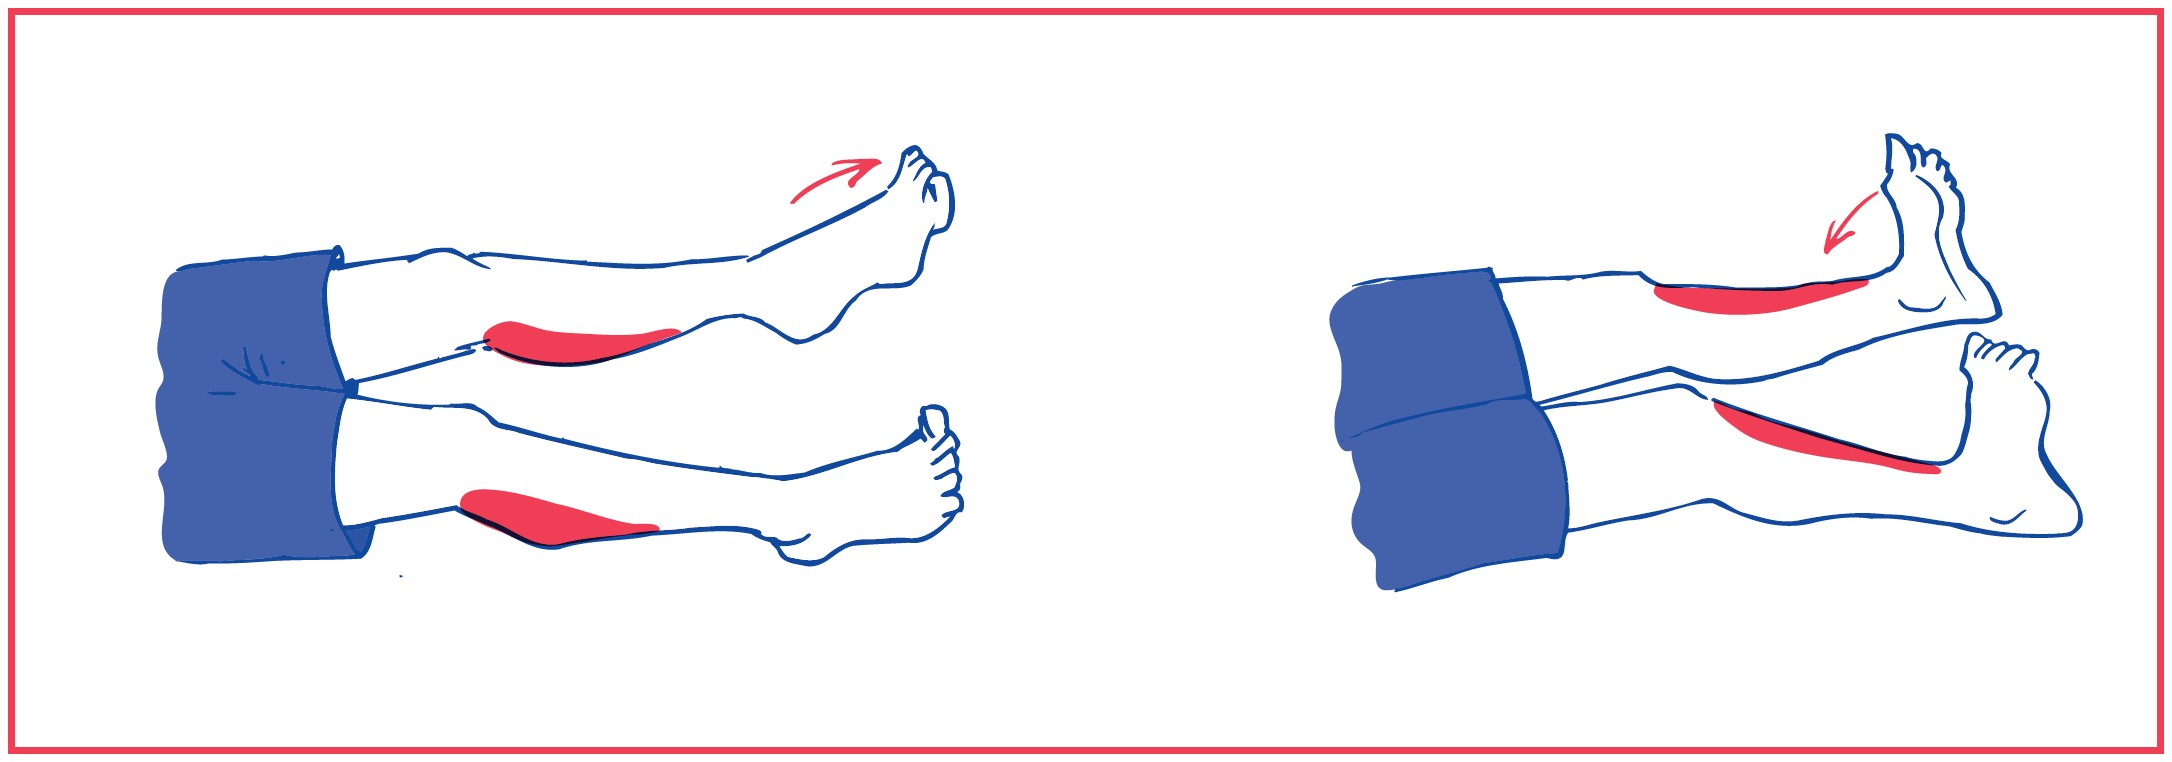 1. Free ankle plantarflexion (foot down) and dorsiflexion (foot up)